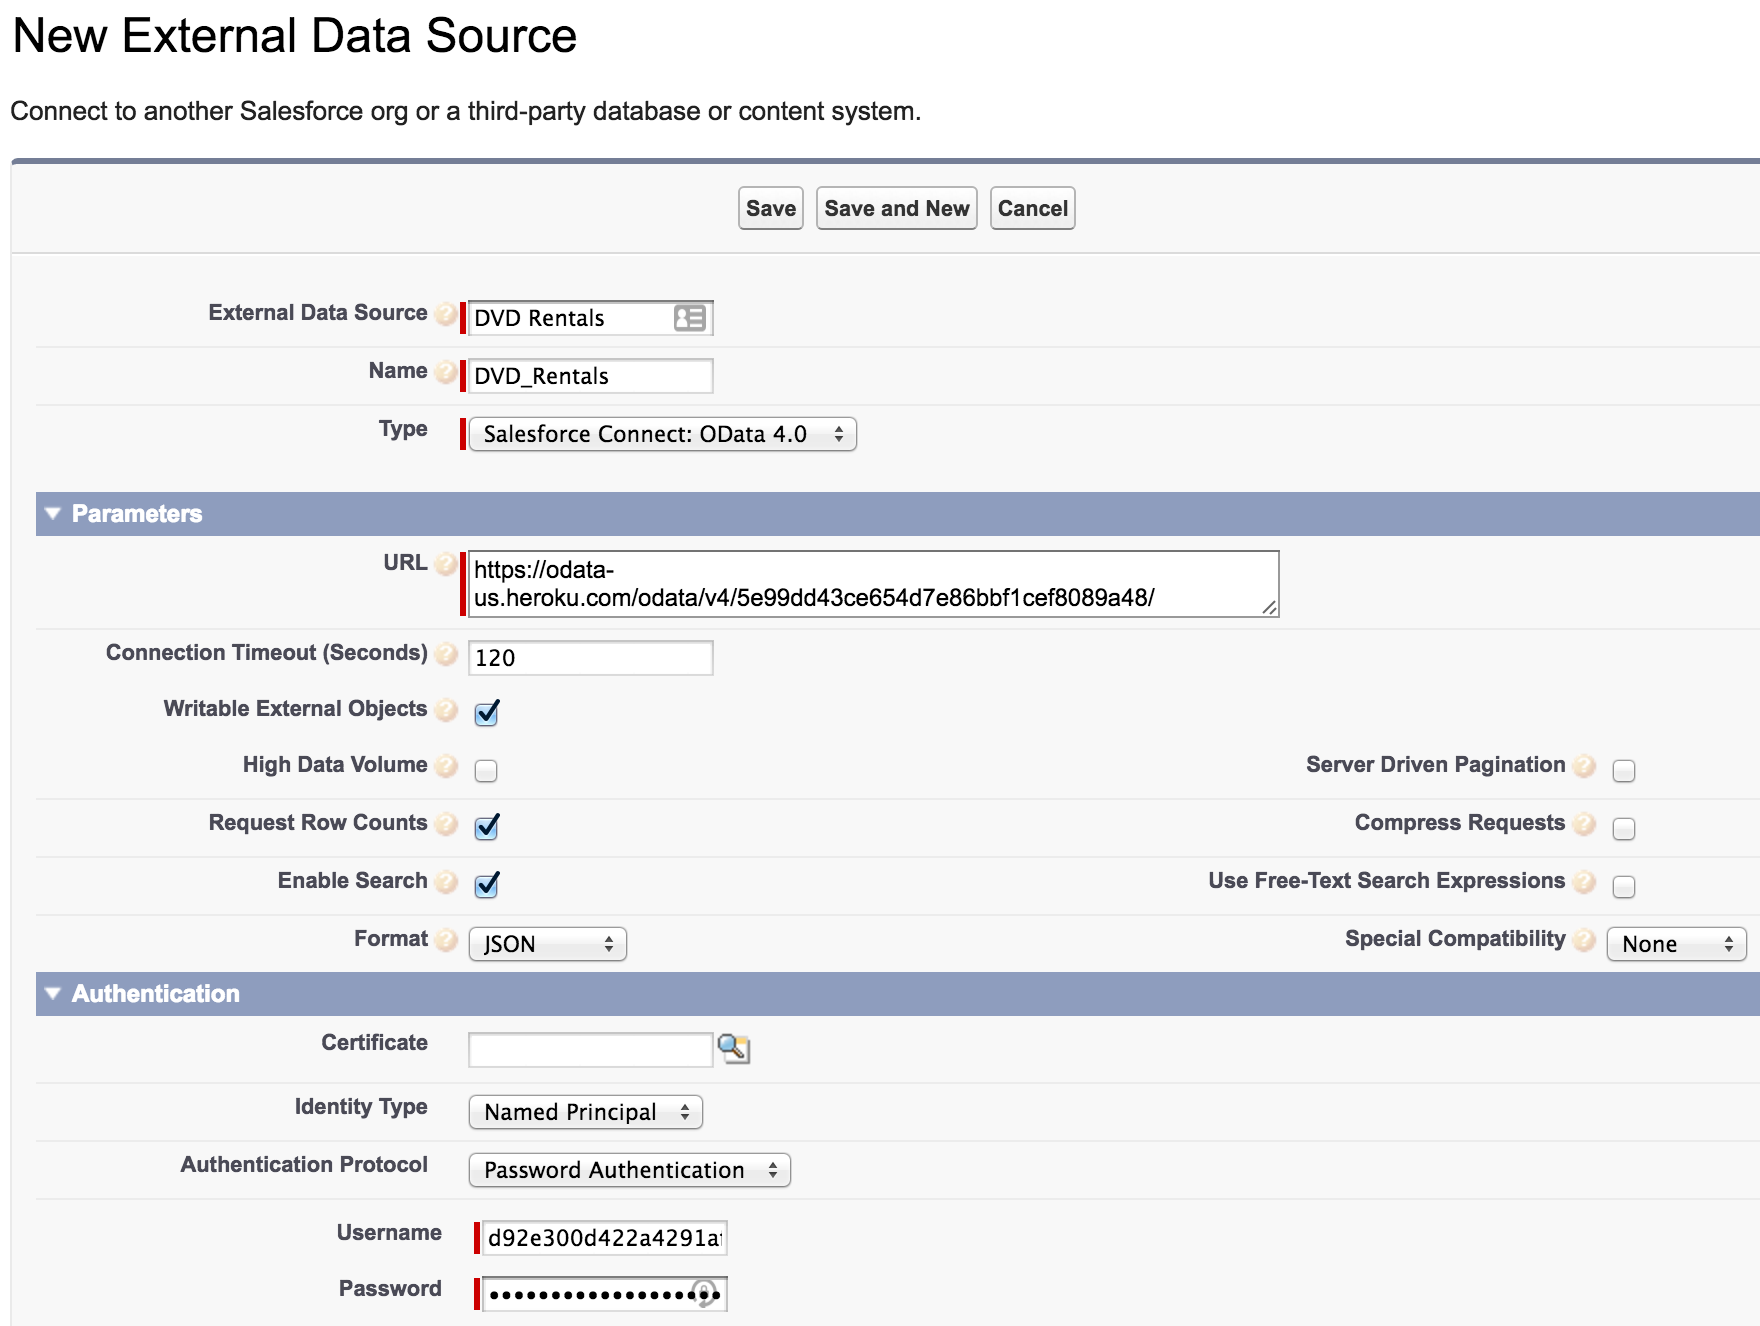 Salesforce UI - New External Data Source